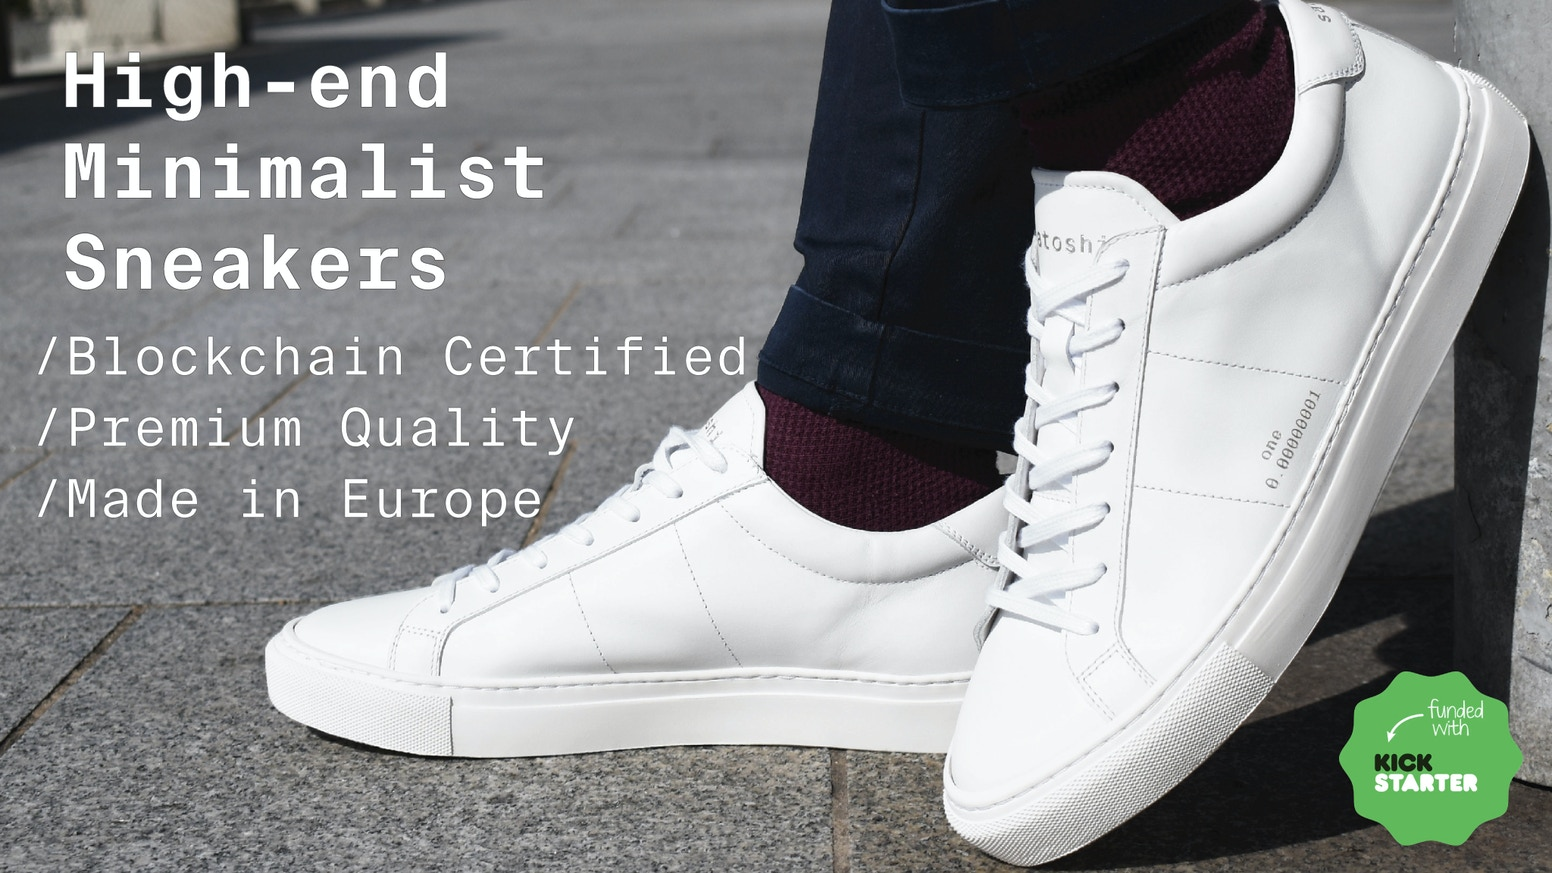 Minimalist high-quality sneakers certified on blockchain. Circular Fashion / Made in Europe / Premium Quality / Unisex.